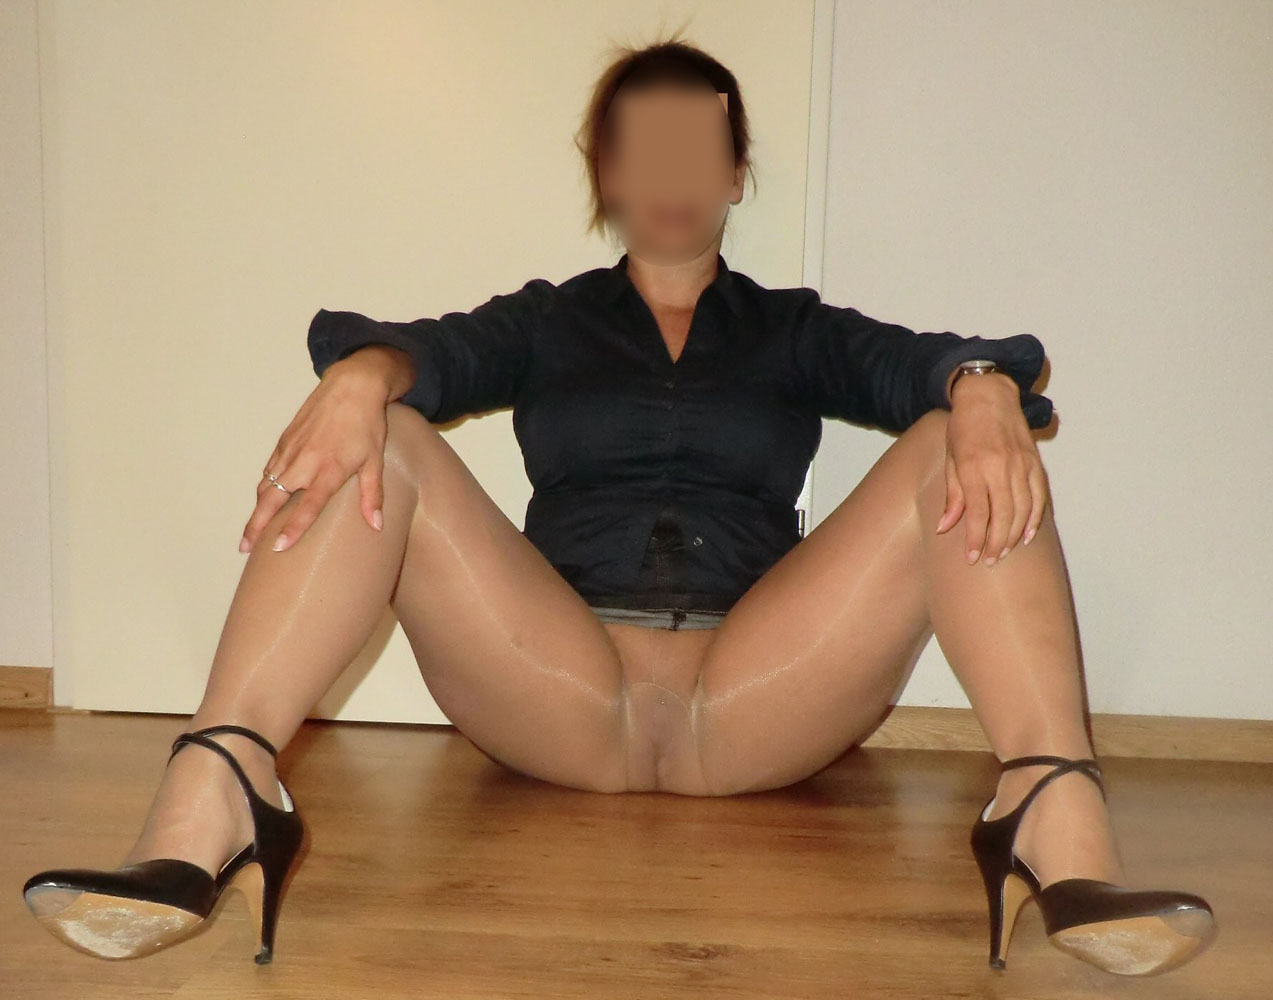 prono video escort angouleme